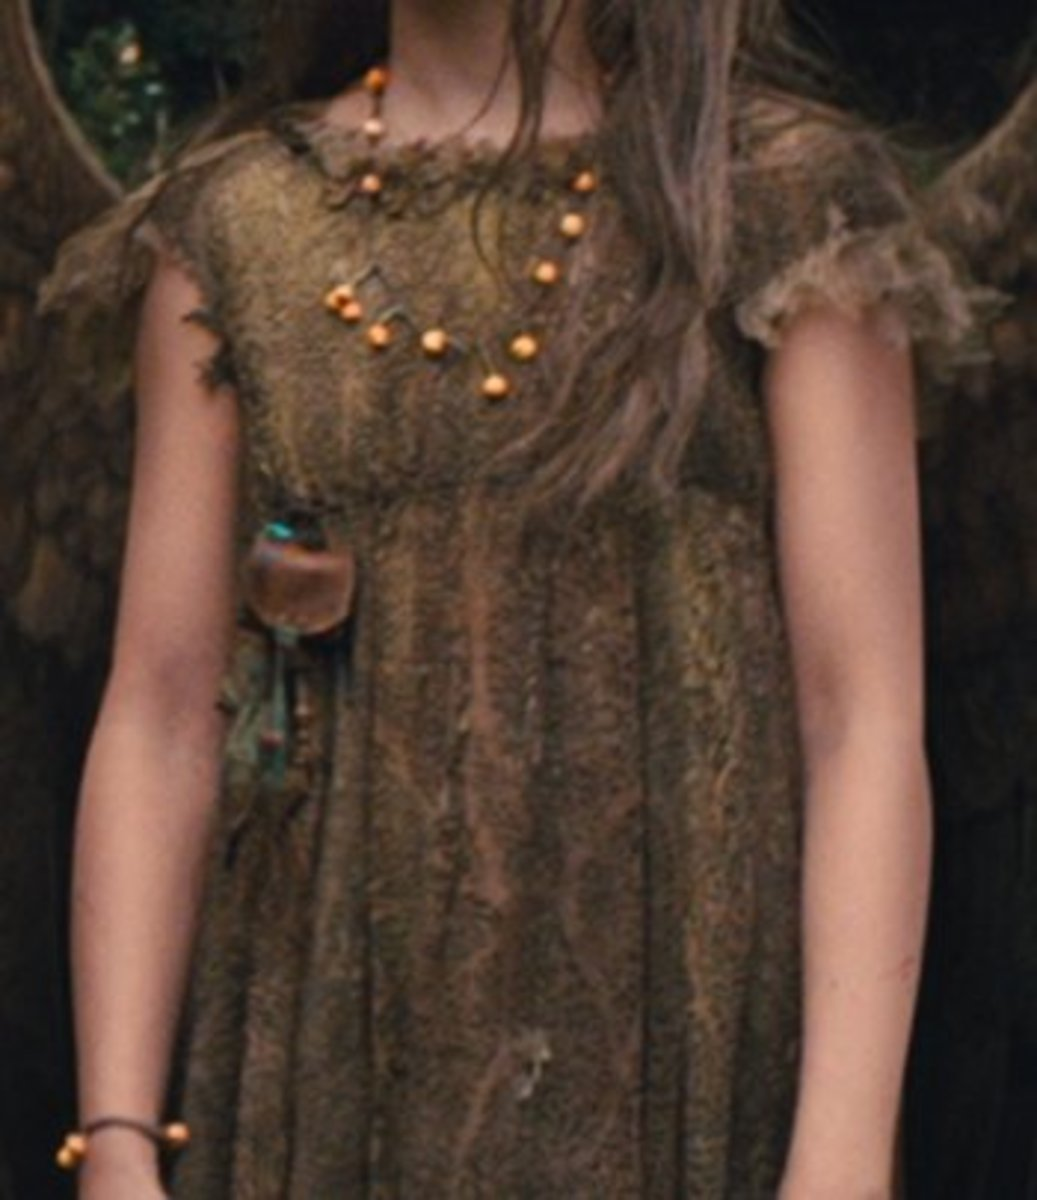 Young Maleficent's Dress from Disney's Maleficent